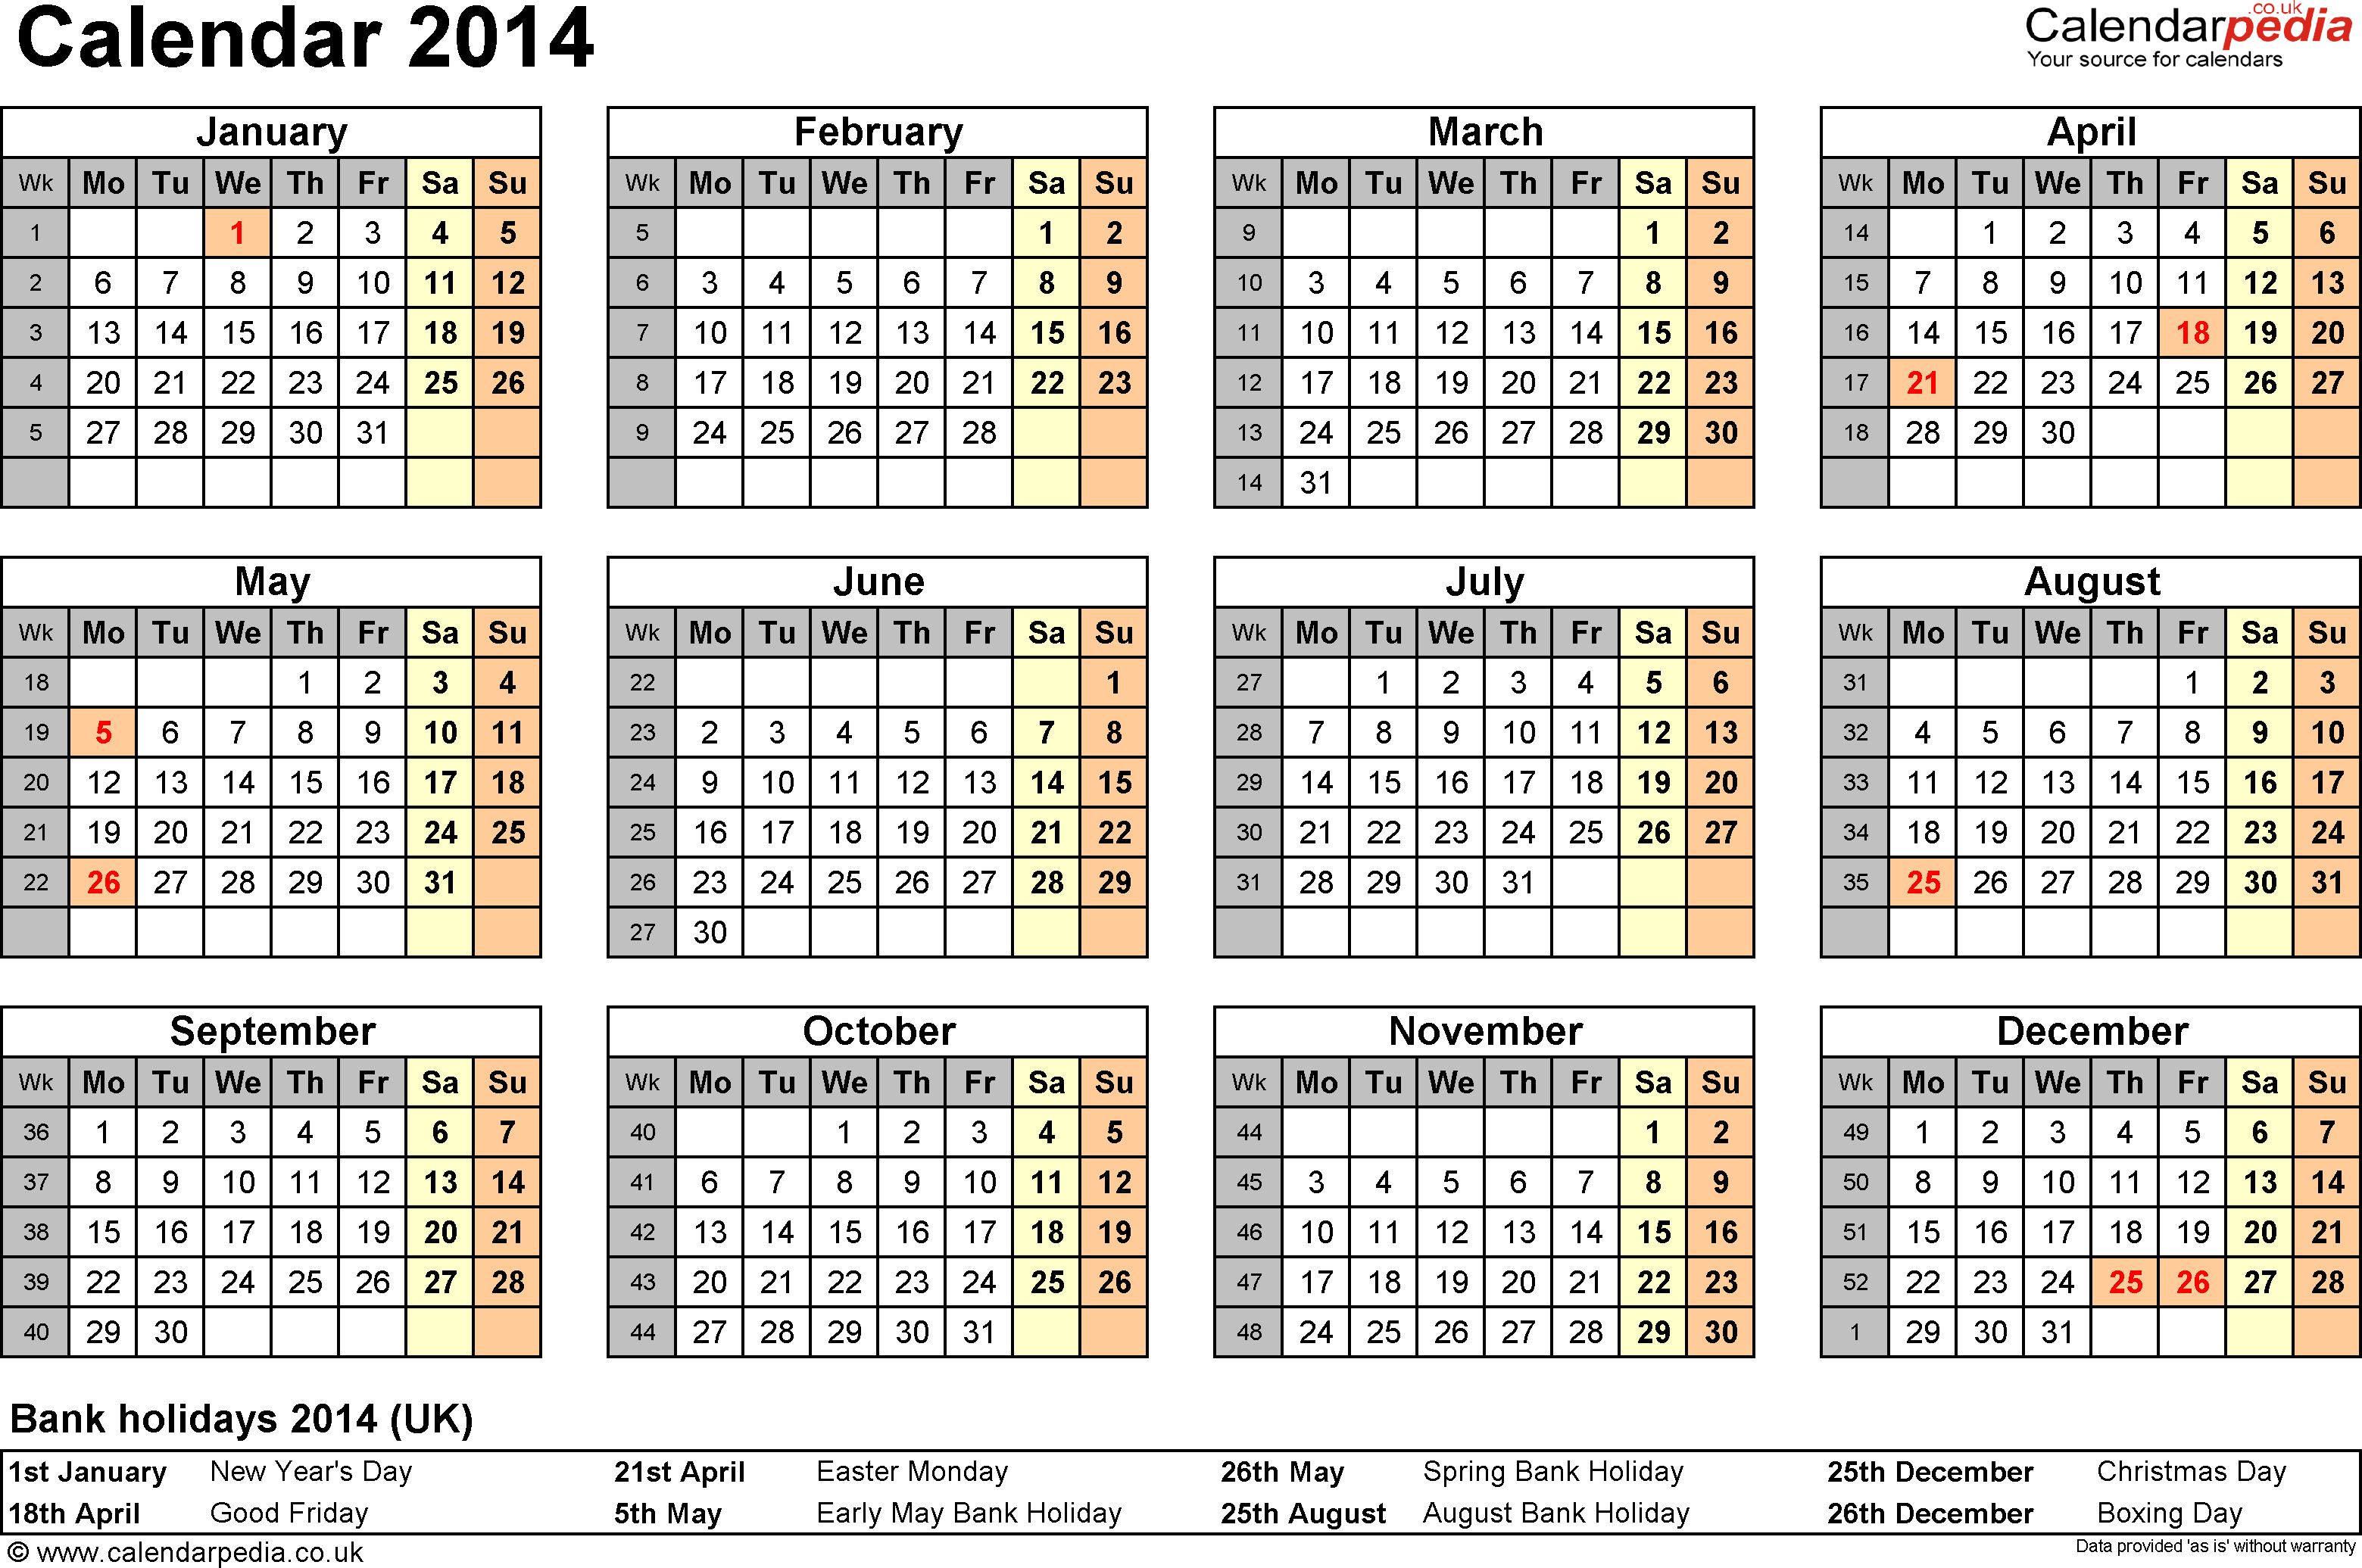 Calendar 2014 PDF (UK): 15 printable templates (free)